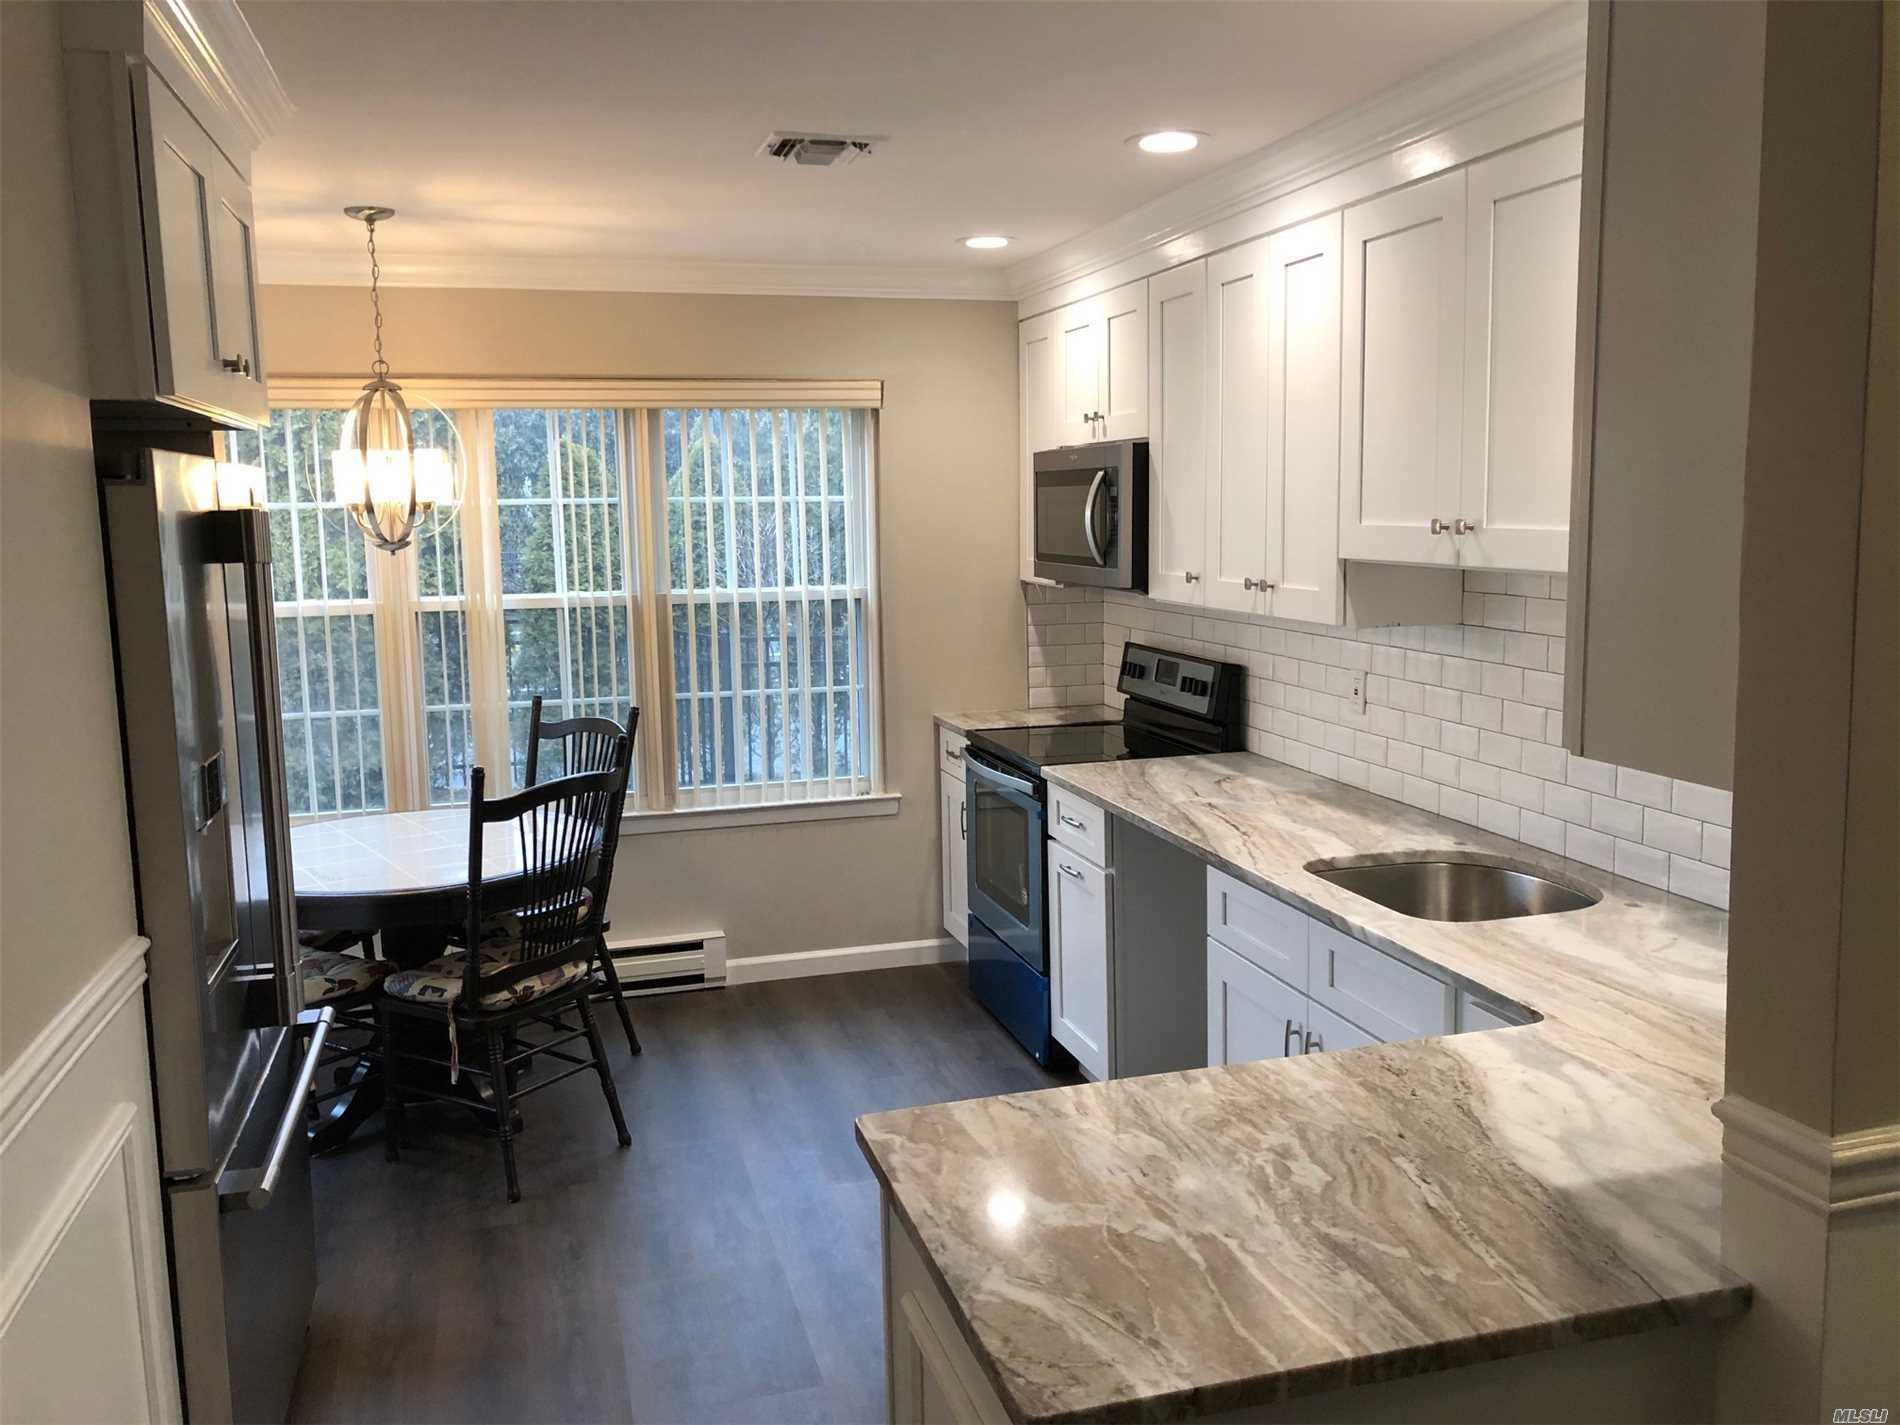 Totally Renovated. Better Than New! Granite, With Ss Appliances,  Counter-Depth French Door Frig, Custom Molding, Marble Tile Floors, Custom Molding Throughout, All New Flooring. High End Hamptons Builder. Nicer Than Photos! Largest Dartmouth Model!